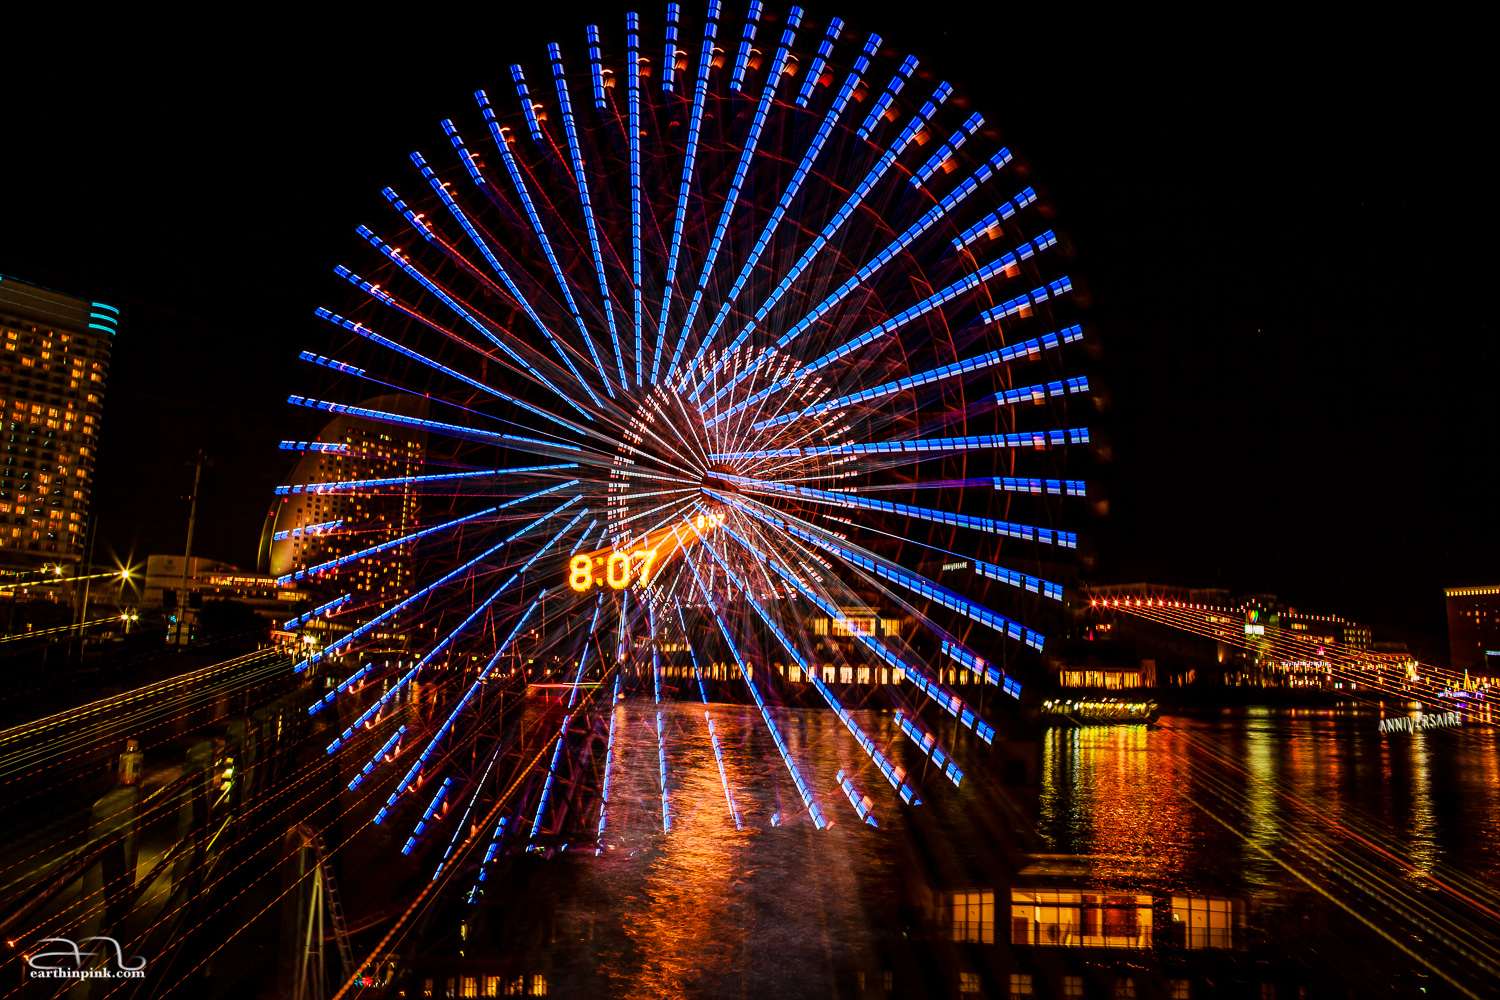 I love how the image of the Ferris wheel seems to dip down into the water on the lower side.